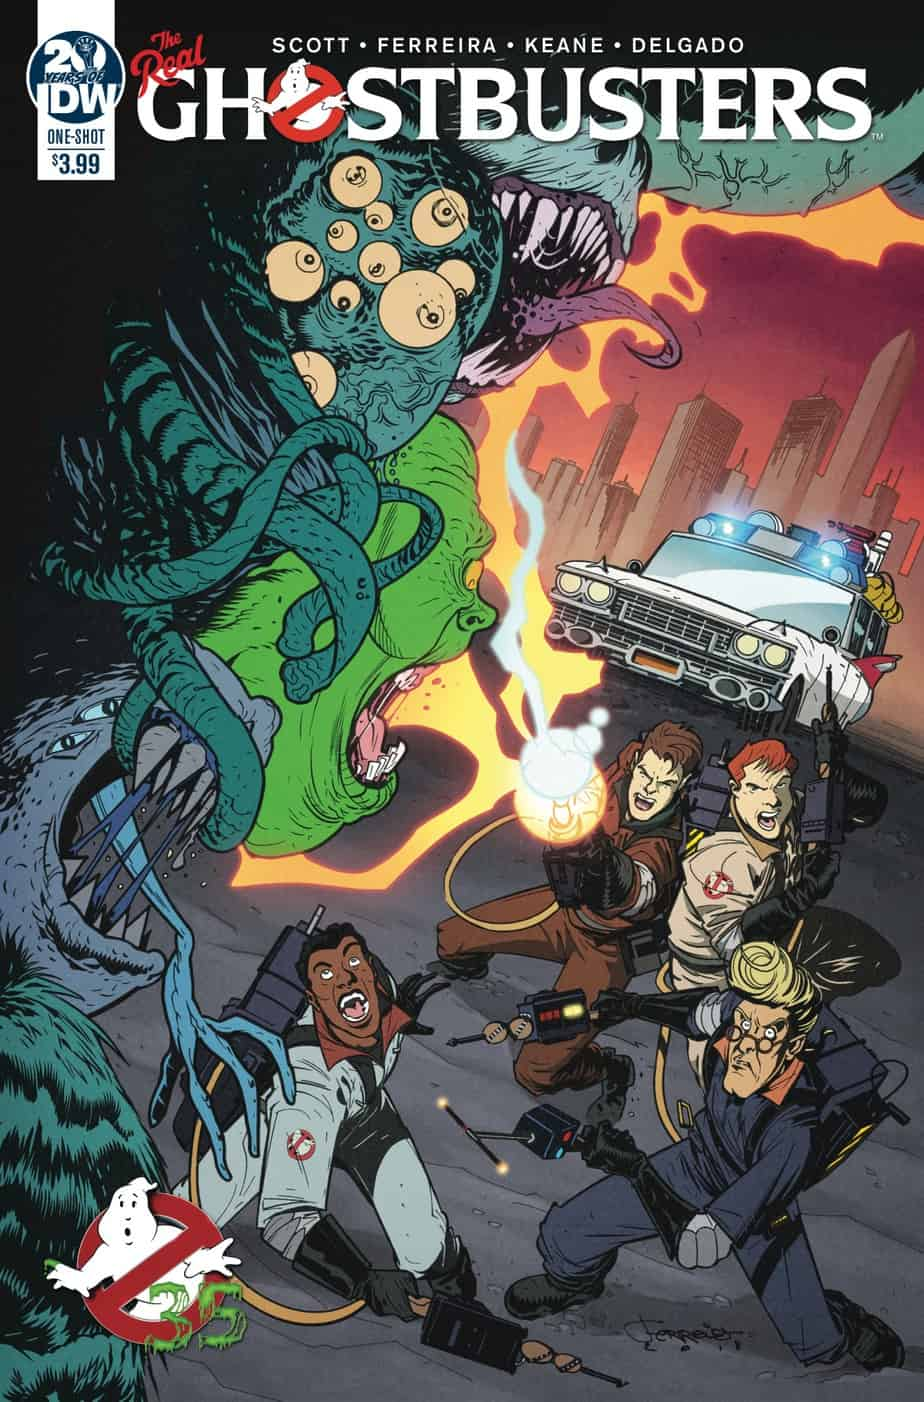 Ghostbusters 35th Anniversary: Real Ghostbusters #1 - Main Cover